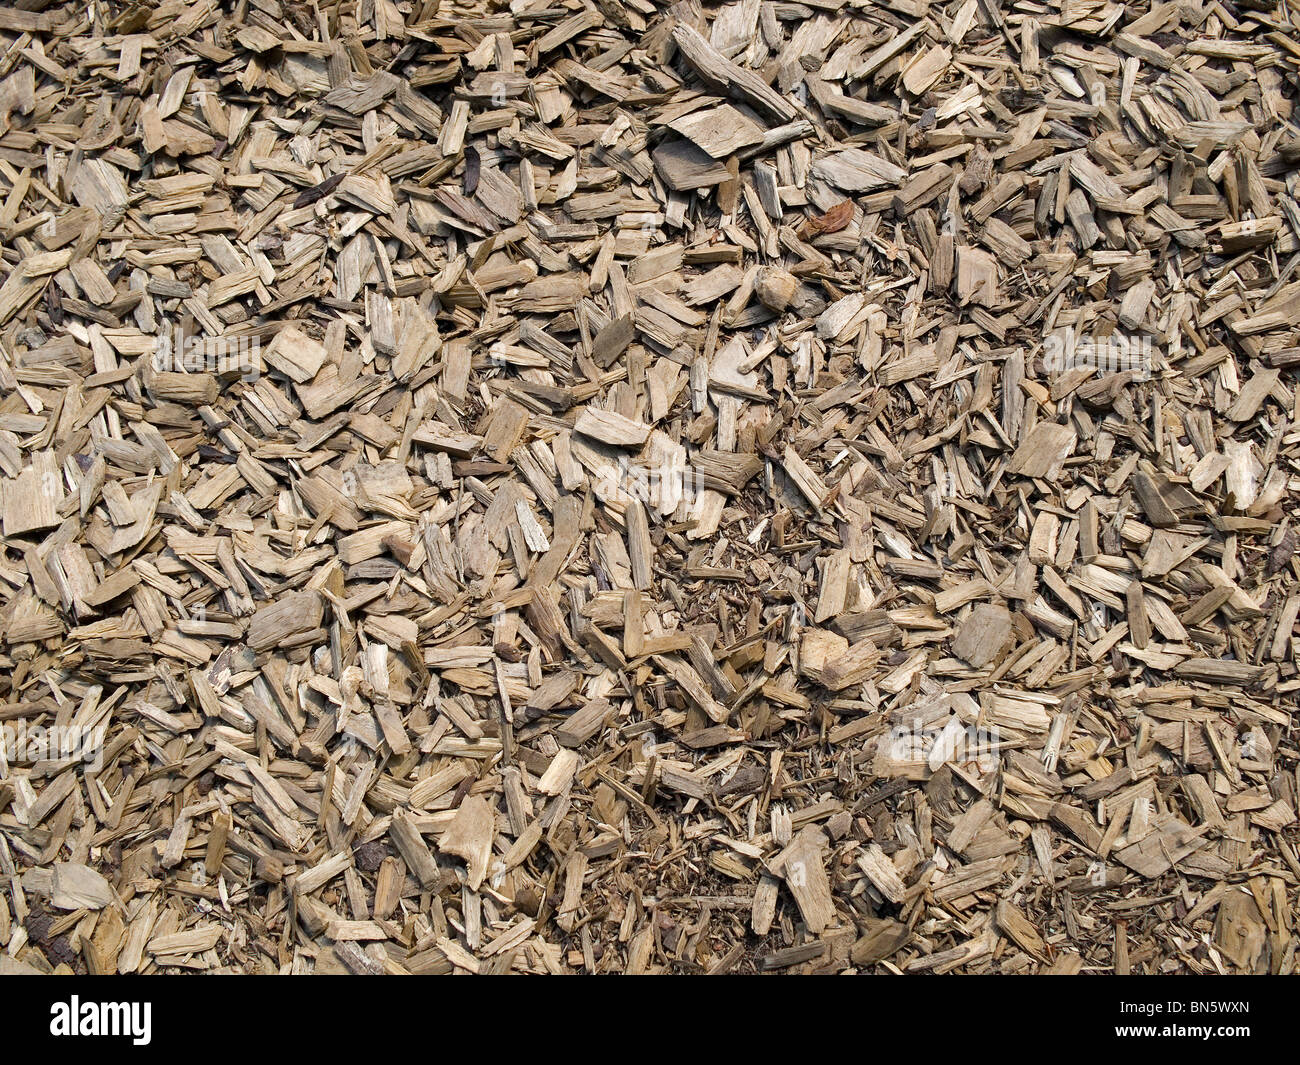 Wood Chips For Ground Cover ~ Wood chip and bark ground cover stock photo royalty free